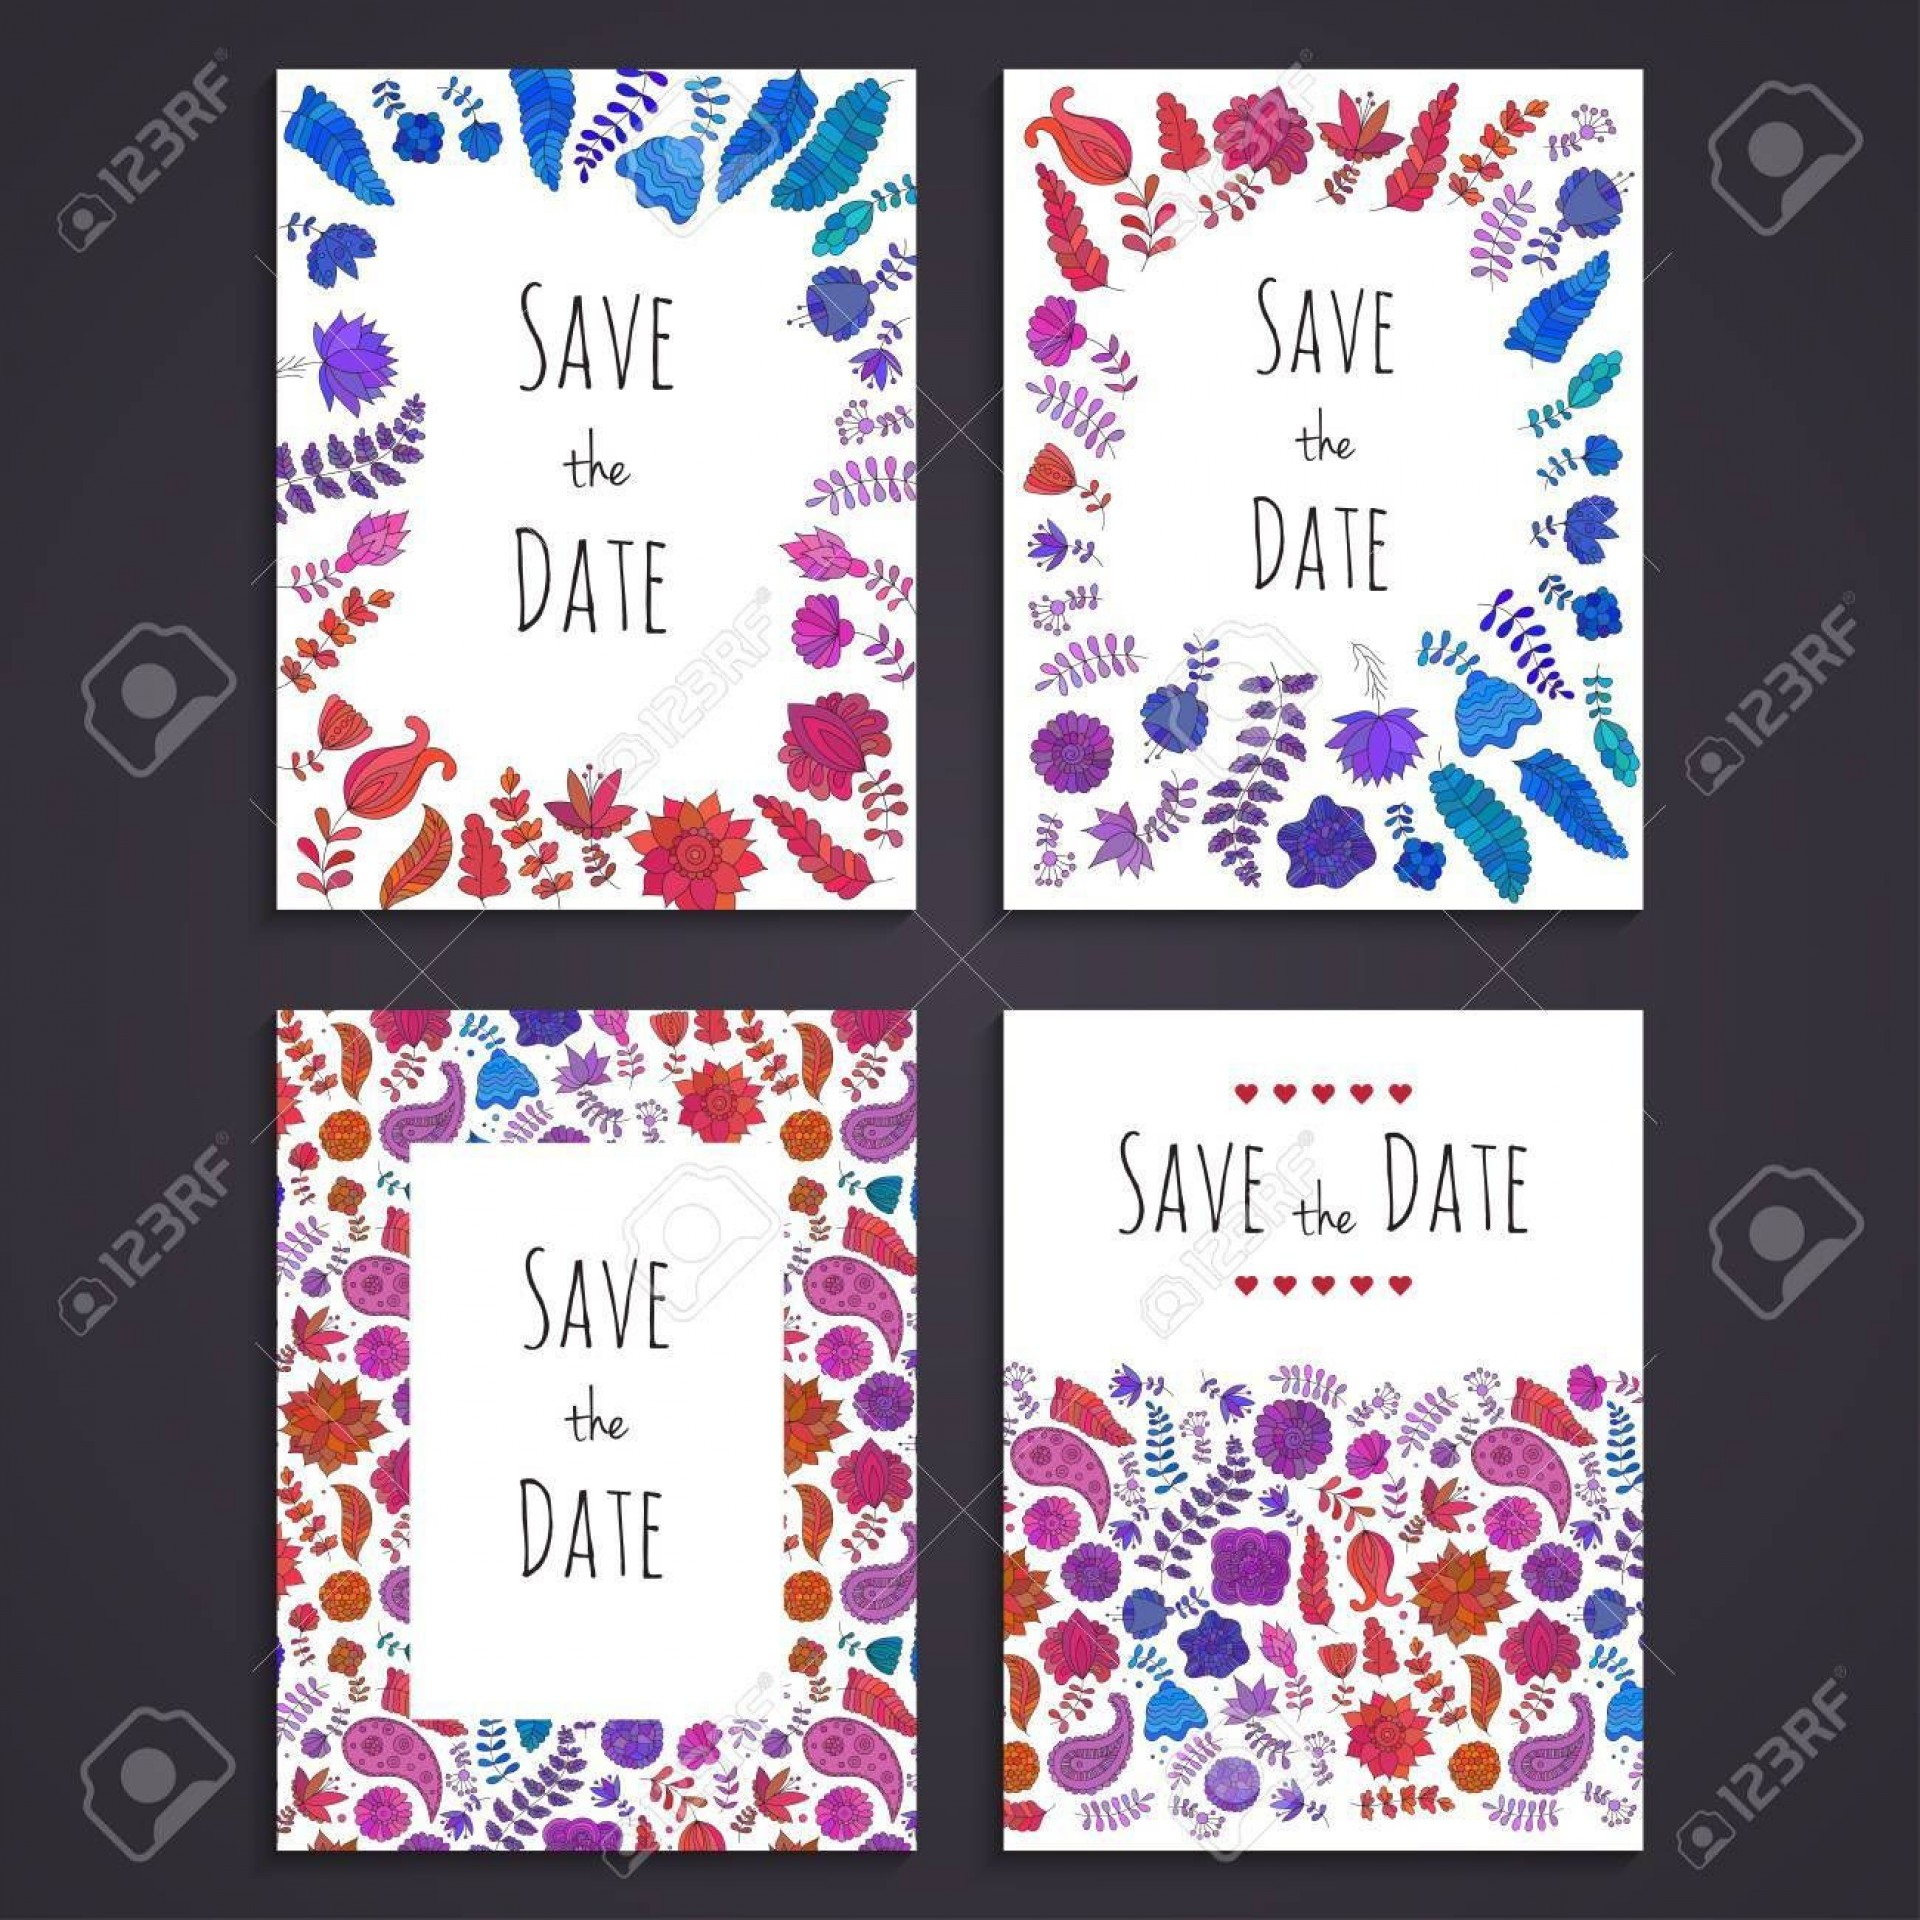 003 Staggering Free Save The Date Birthday Postcard Template High Def 1920